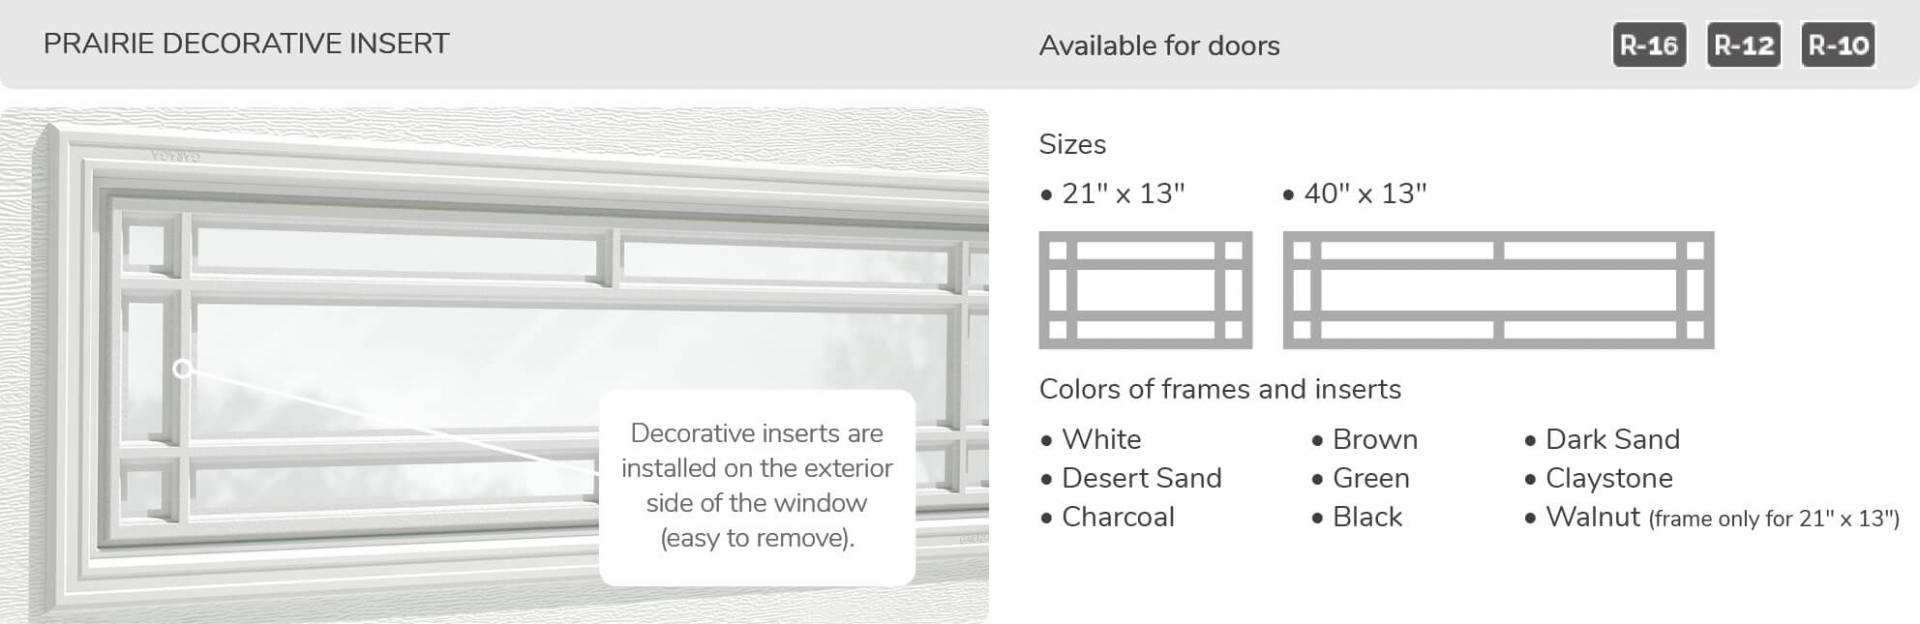 Prairie Decorative Insert, 21' x 13' and 40' x 13', available for doors R-16, R-12 and R-10